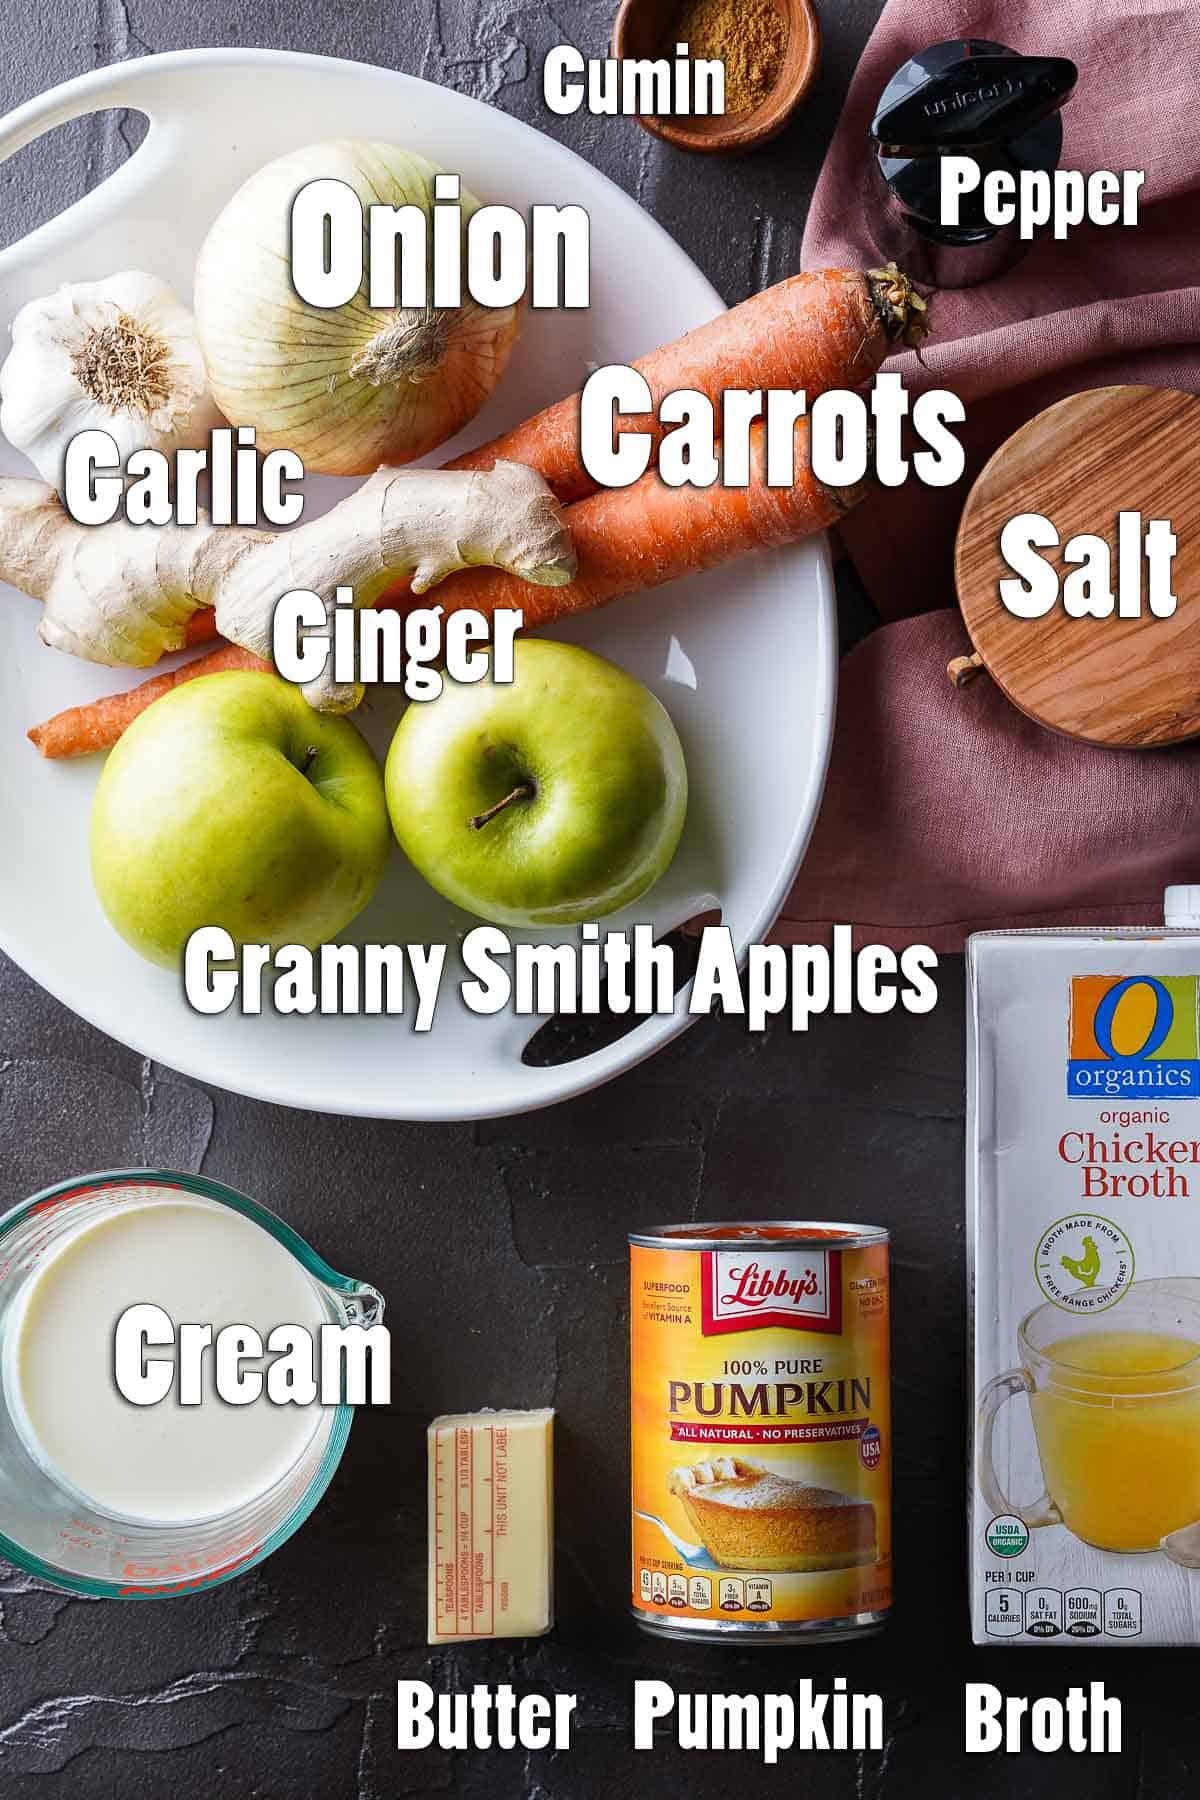 Top down view of Carrot Pumpkin Apple Soup Ingredients